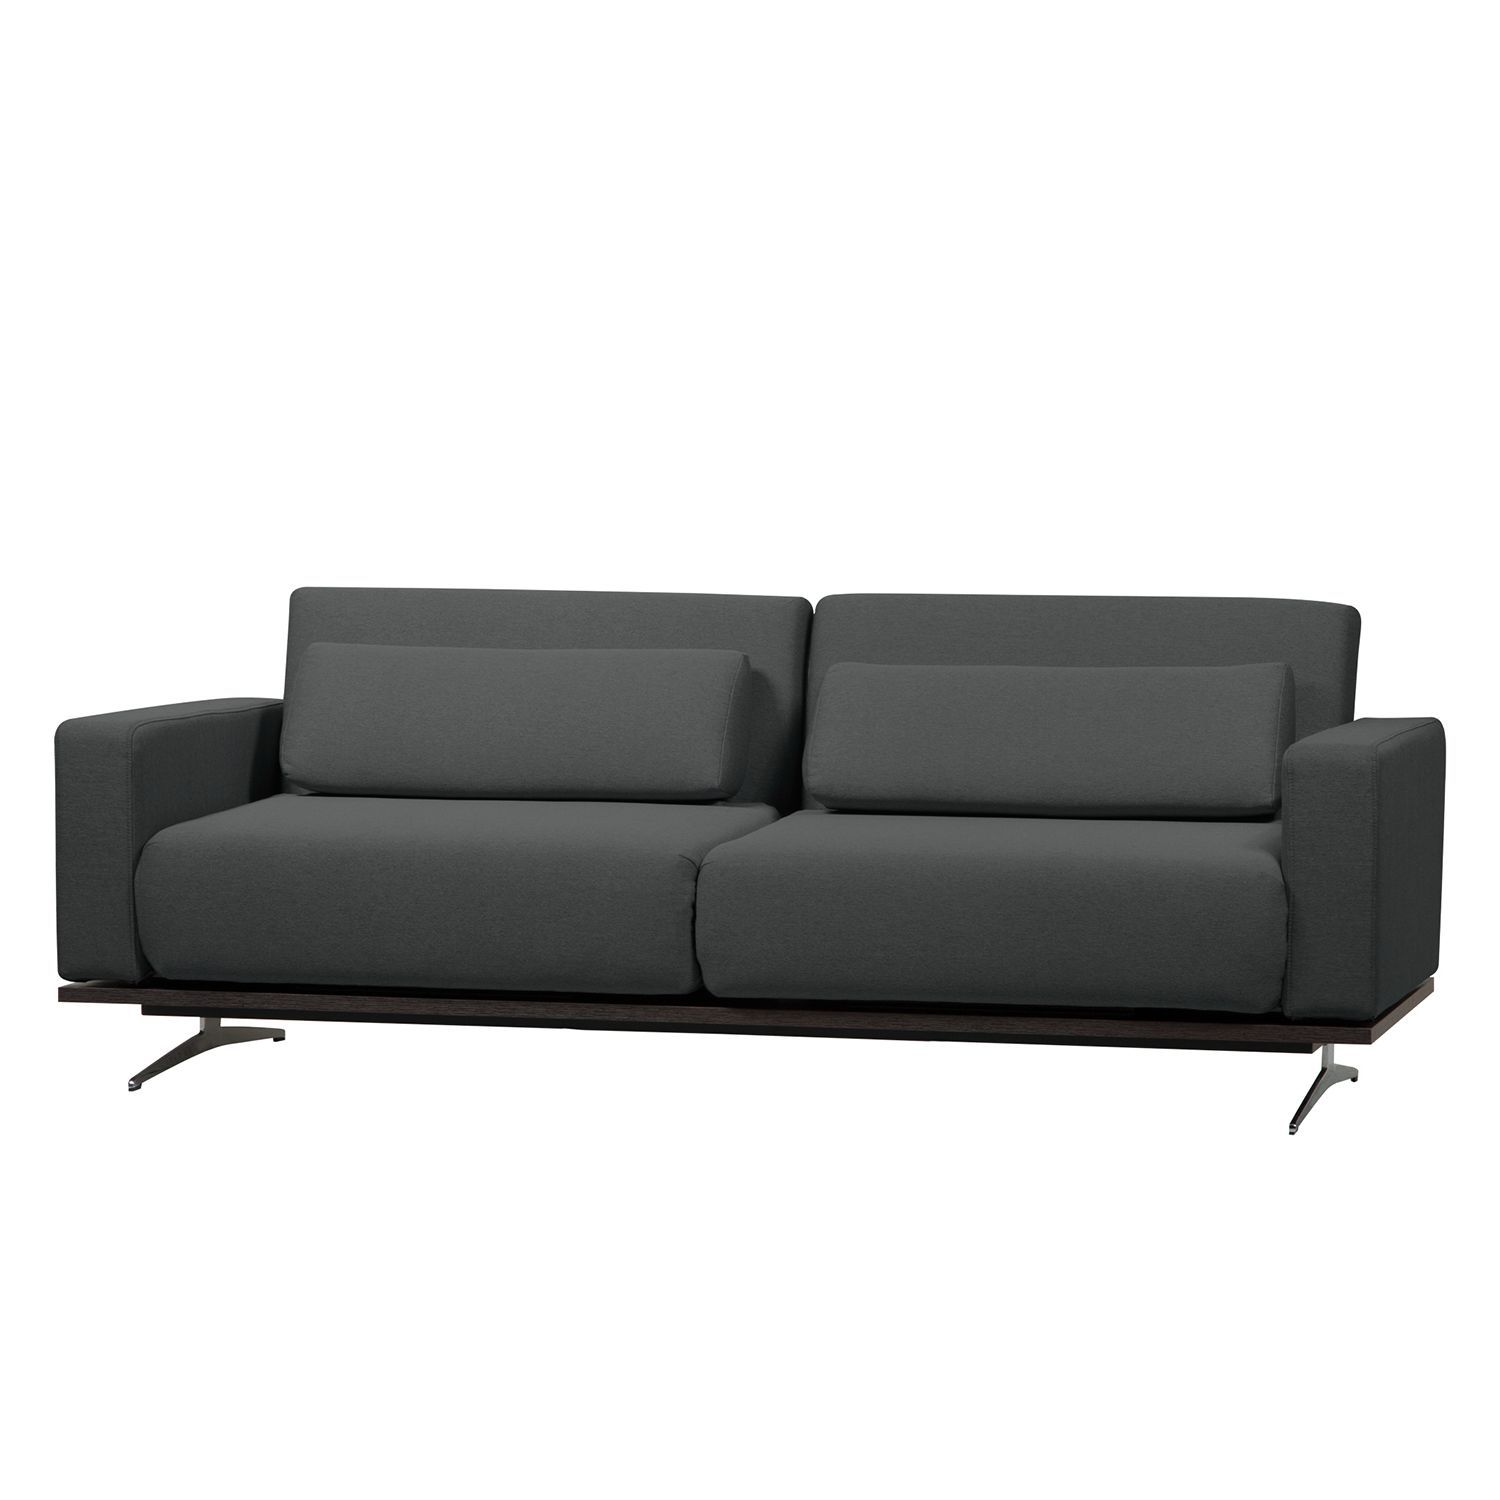 Innovation Schlafsofas Berlin Pin By Ladendirekt On Sofas Couches Sofa Couch Furniture